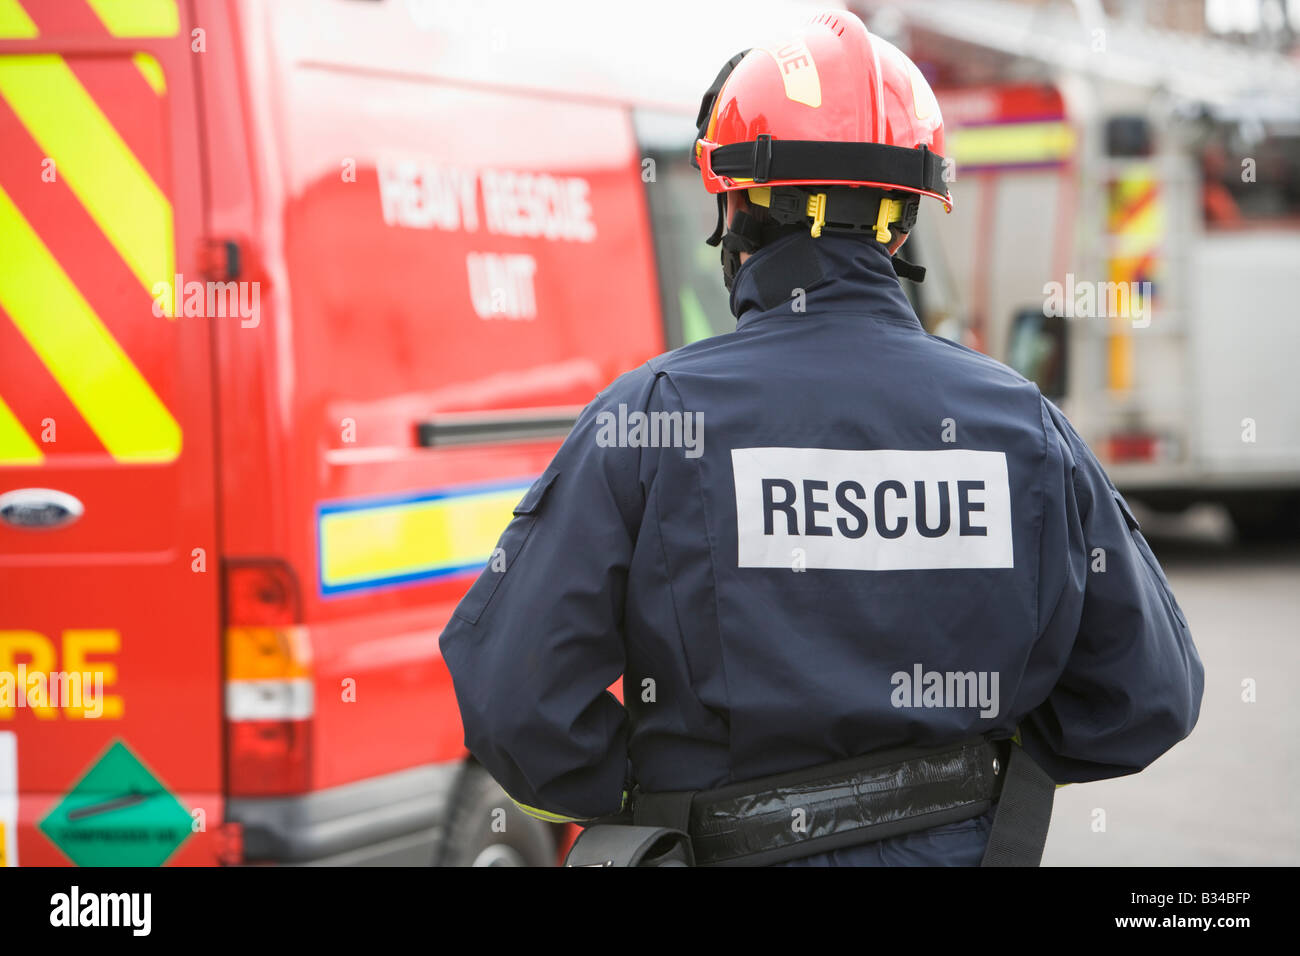 Rescue worker walking back to rescue vehicle - Stock Image